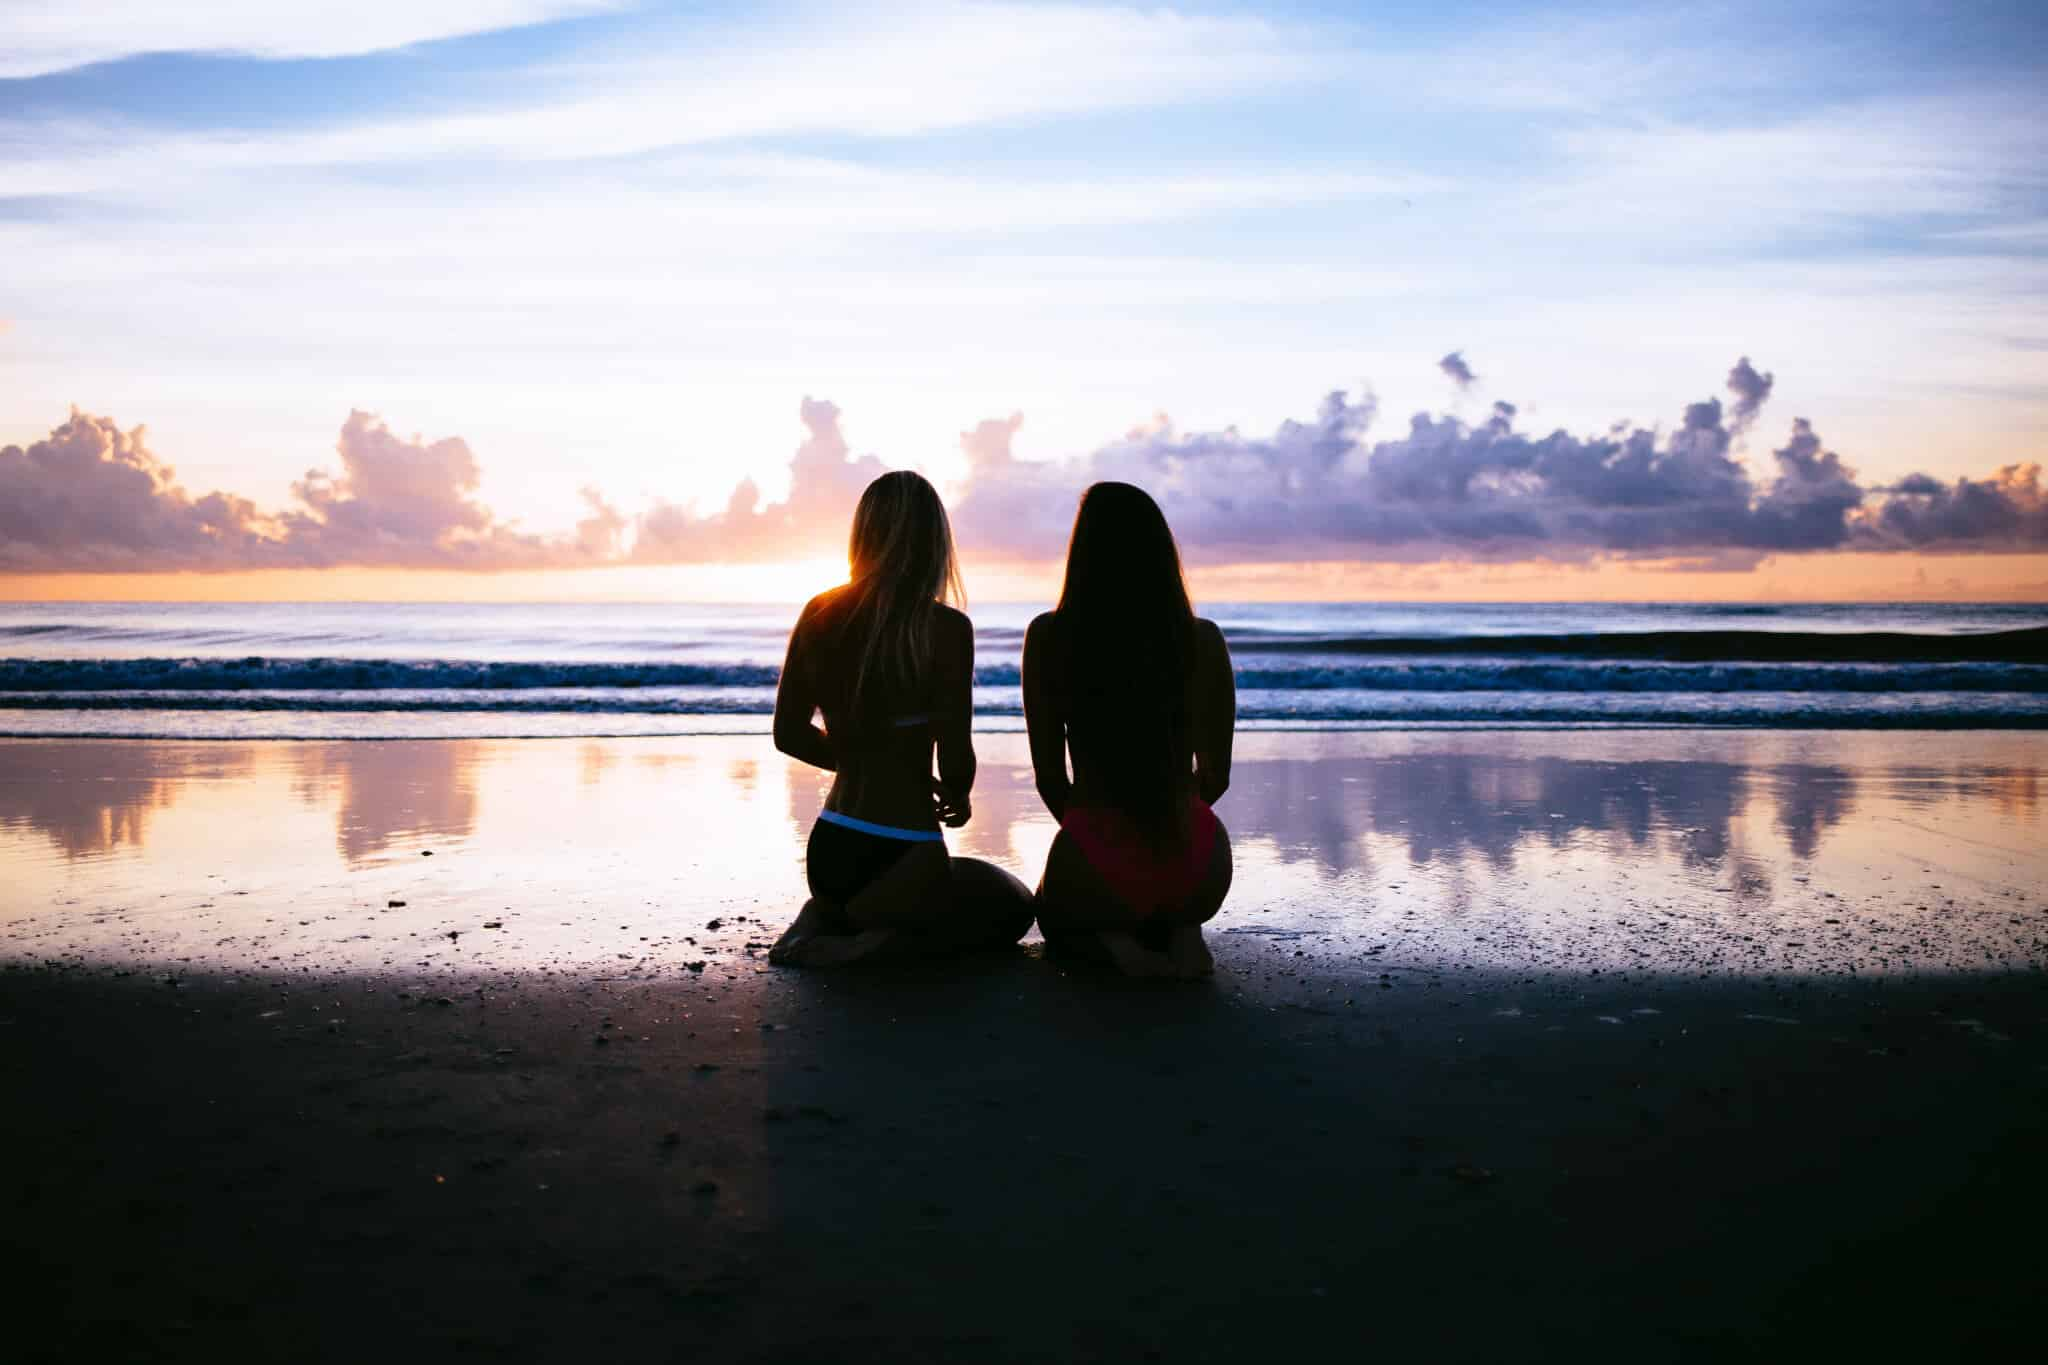 Two silhouetted women sitting on a beach